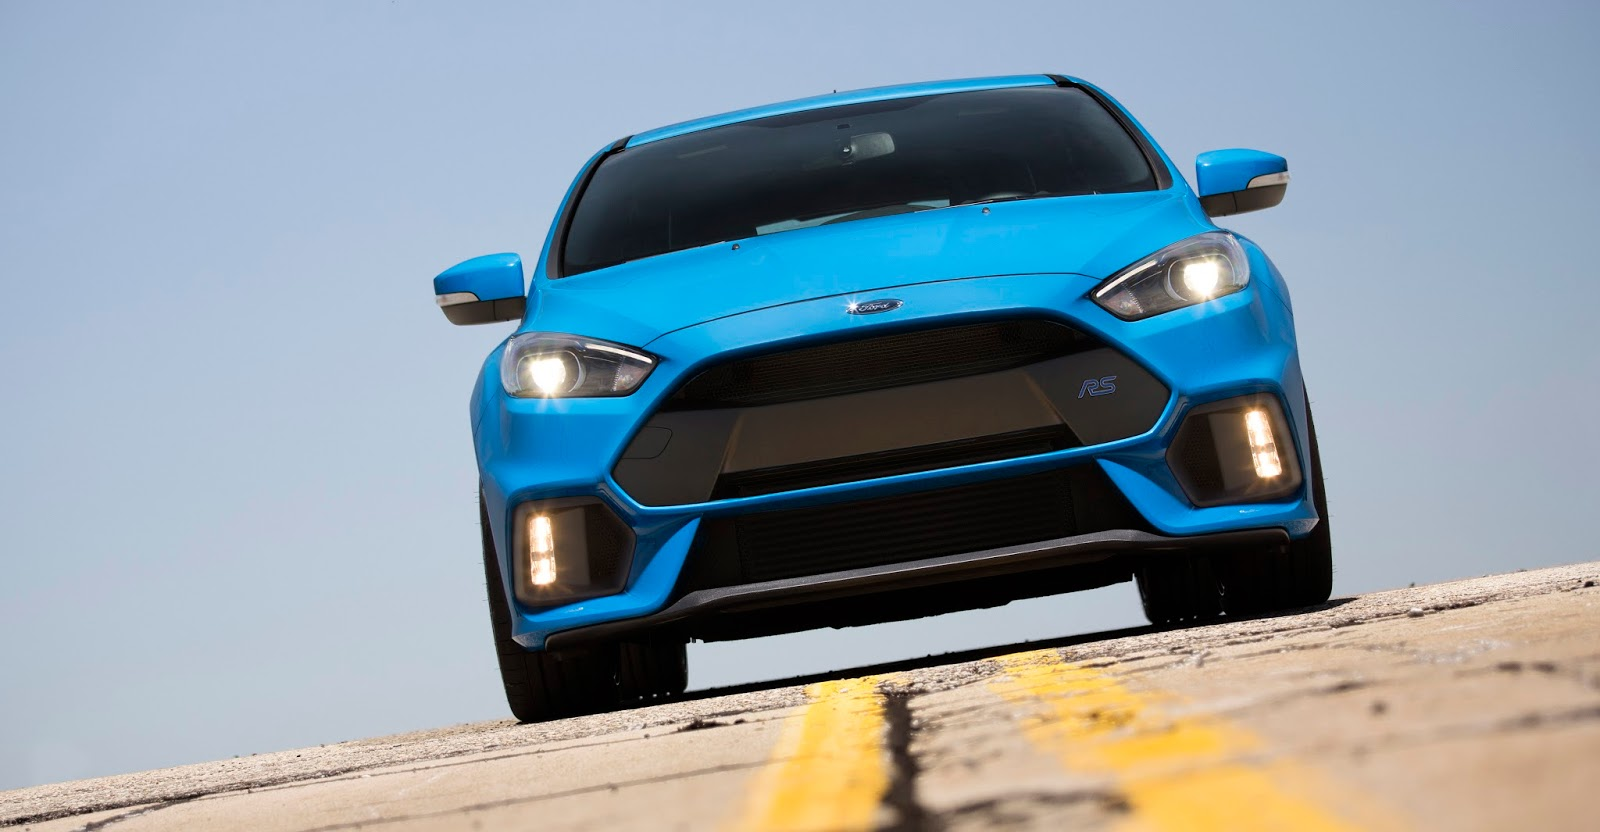 16FocusRS 20 HR Ford Focus RS Option Pack Edition : Το τέλειο βελτιώθηκε! Ford, Ford Focus, Ford Focus RS, Ford Focus RS Option Pack Edition, Ford Performance, Limited edition, videos